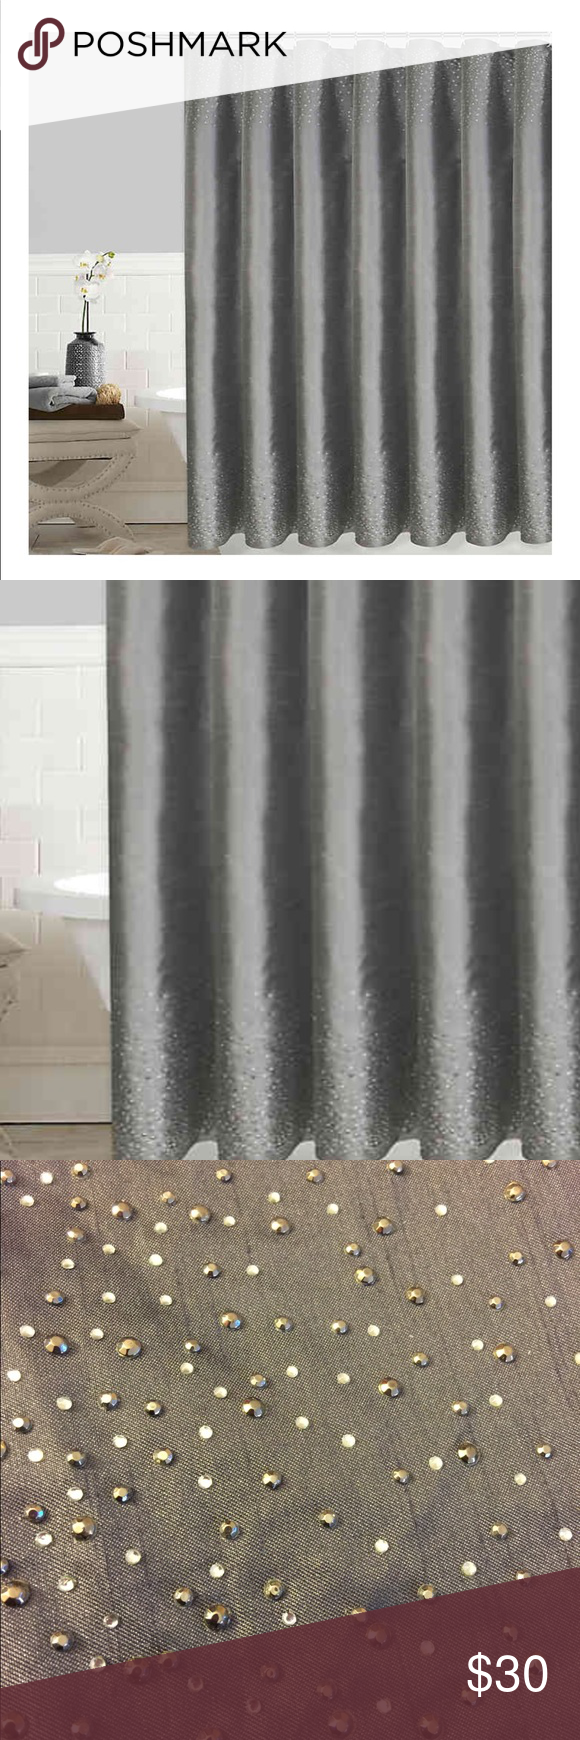 Colordrift Twilight Shower Curtain In Grey Shower Curtain Curtains Colorful Curtains